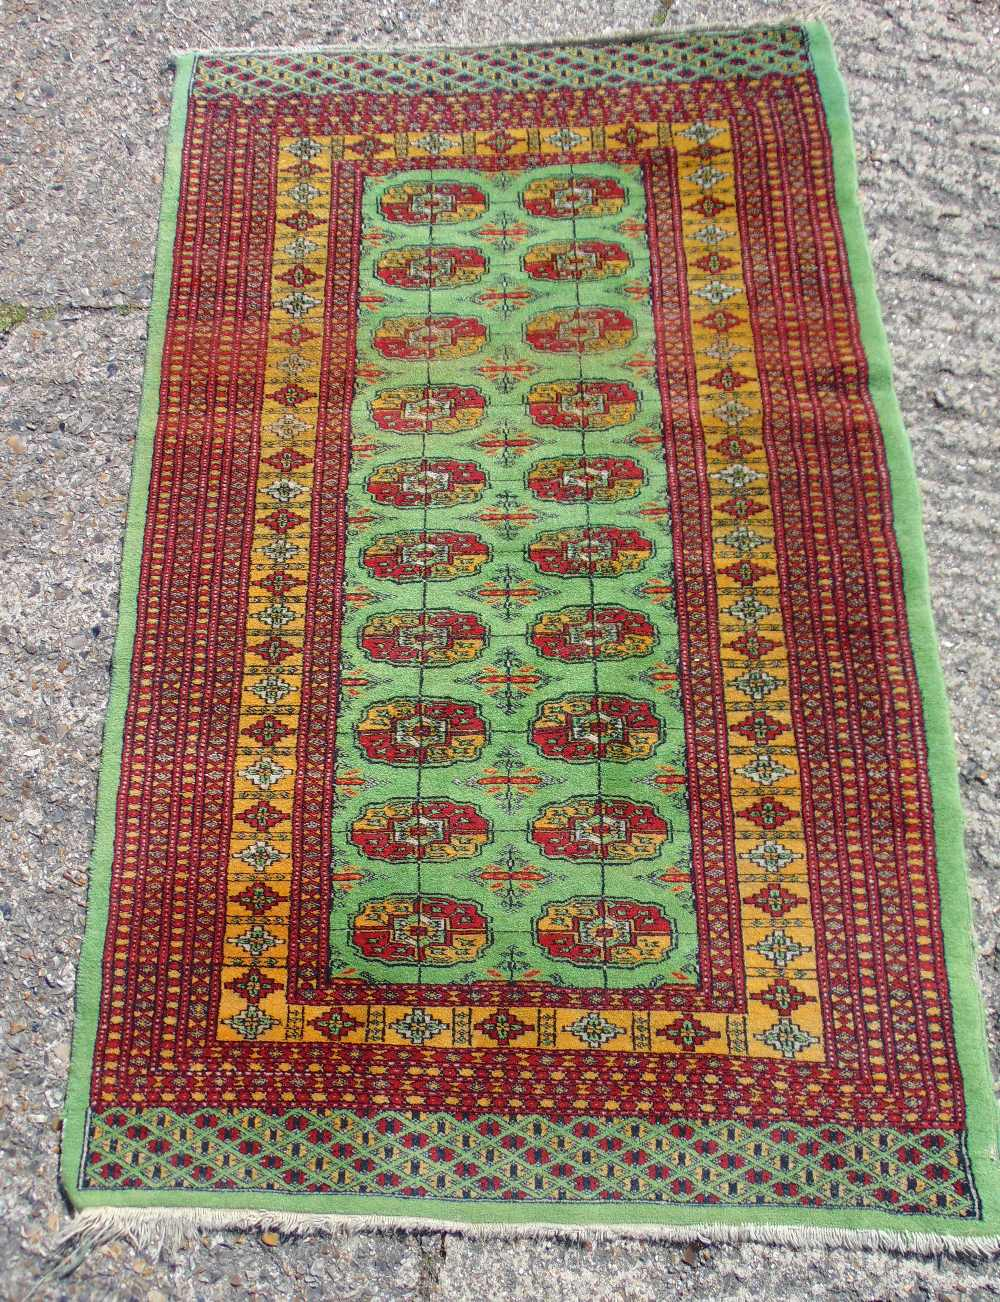 Lot 47 - A Persian wool carpet green ground with repeating motif design, predominately red and green border